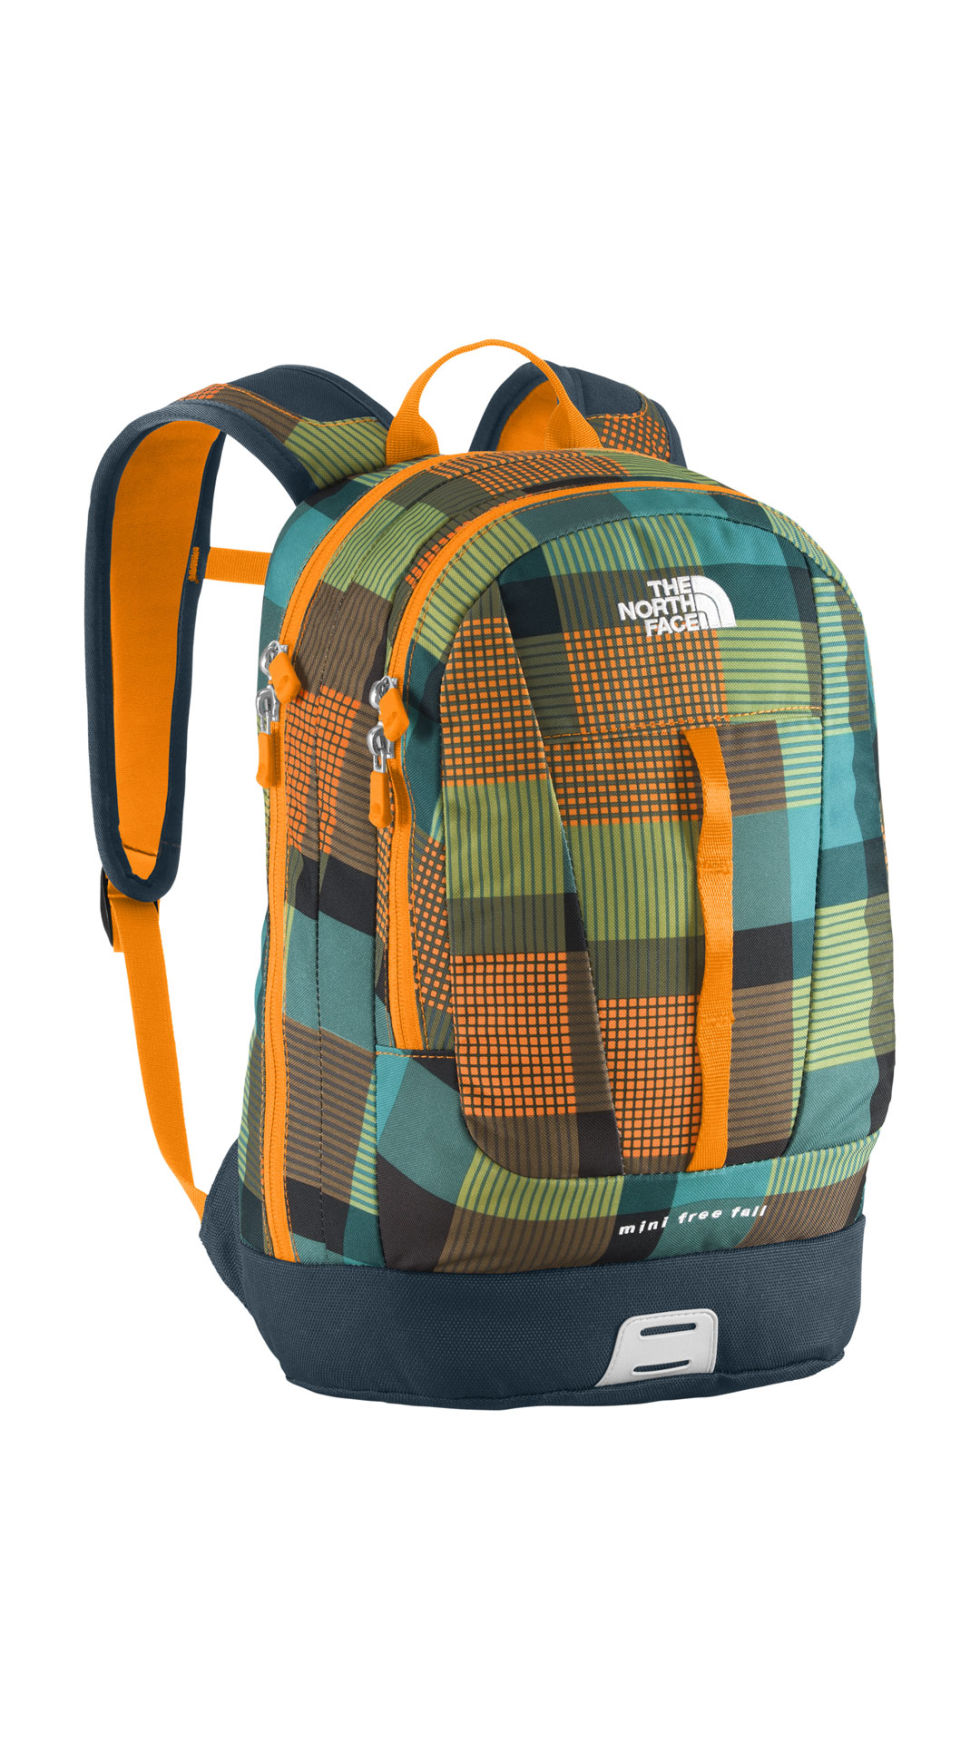 Best Backpacks For School UqCPcuys